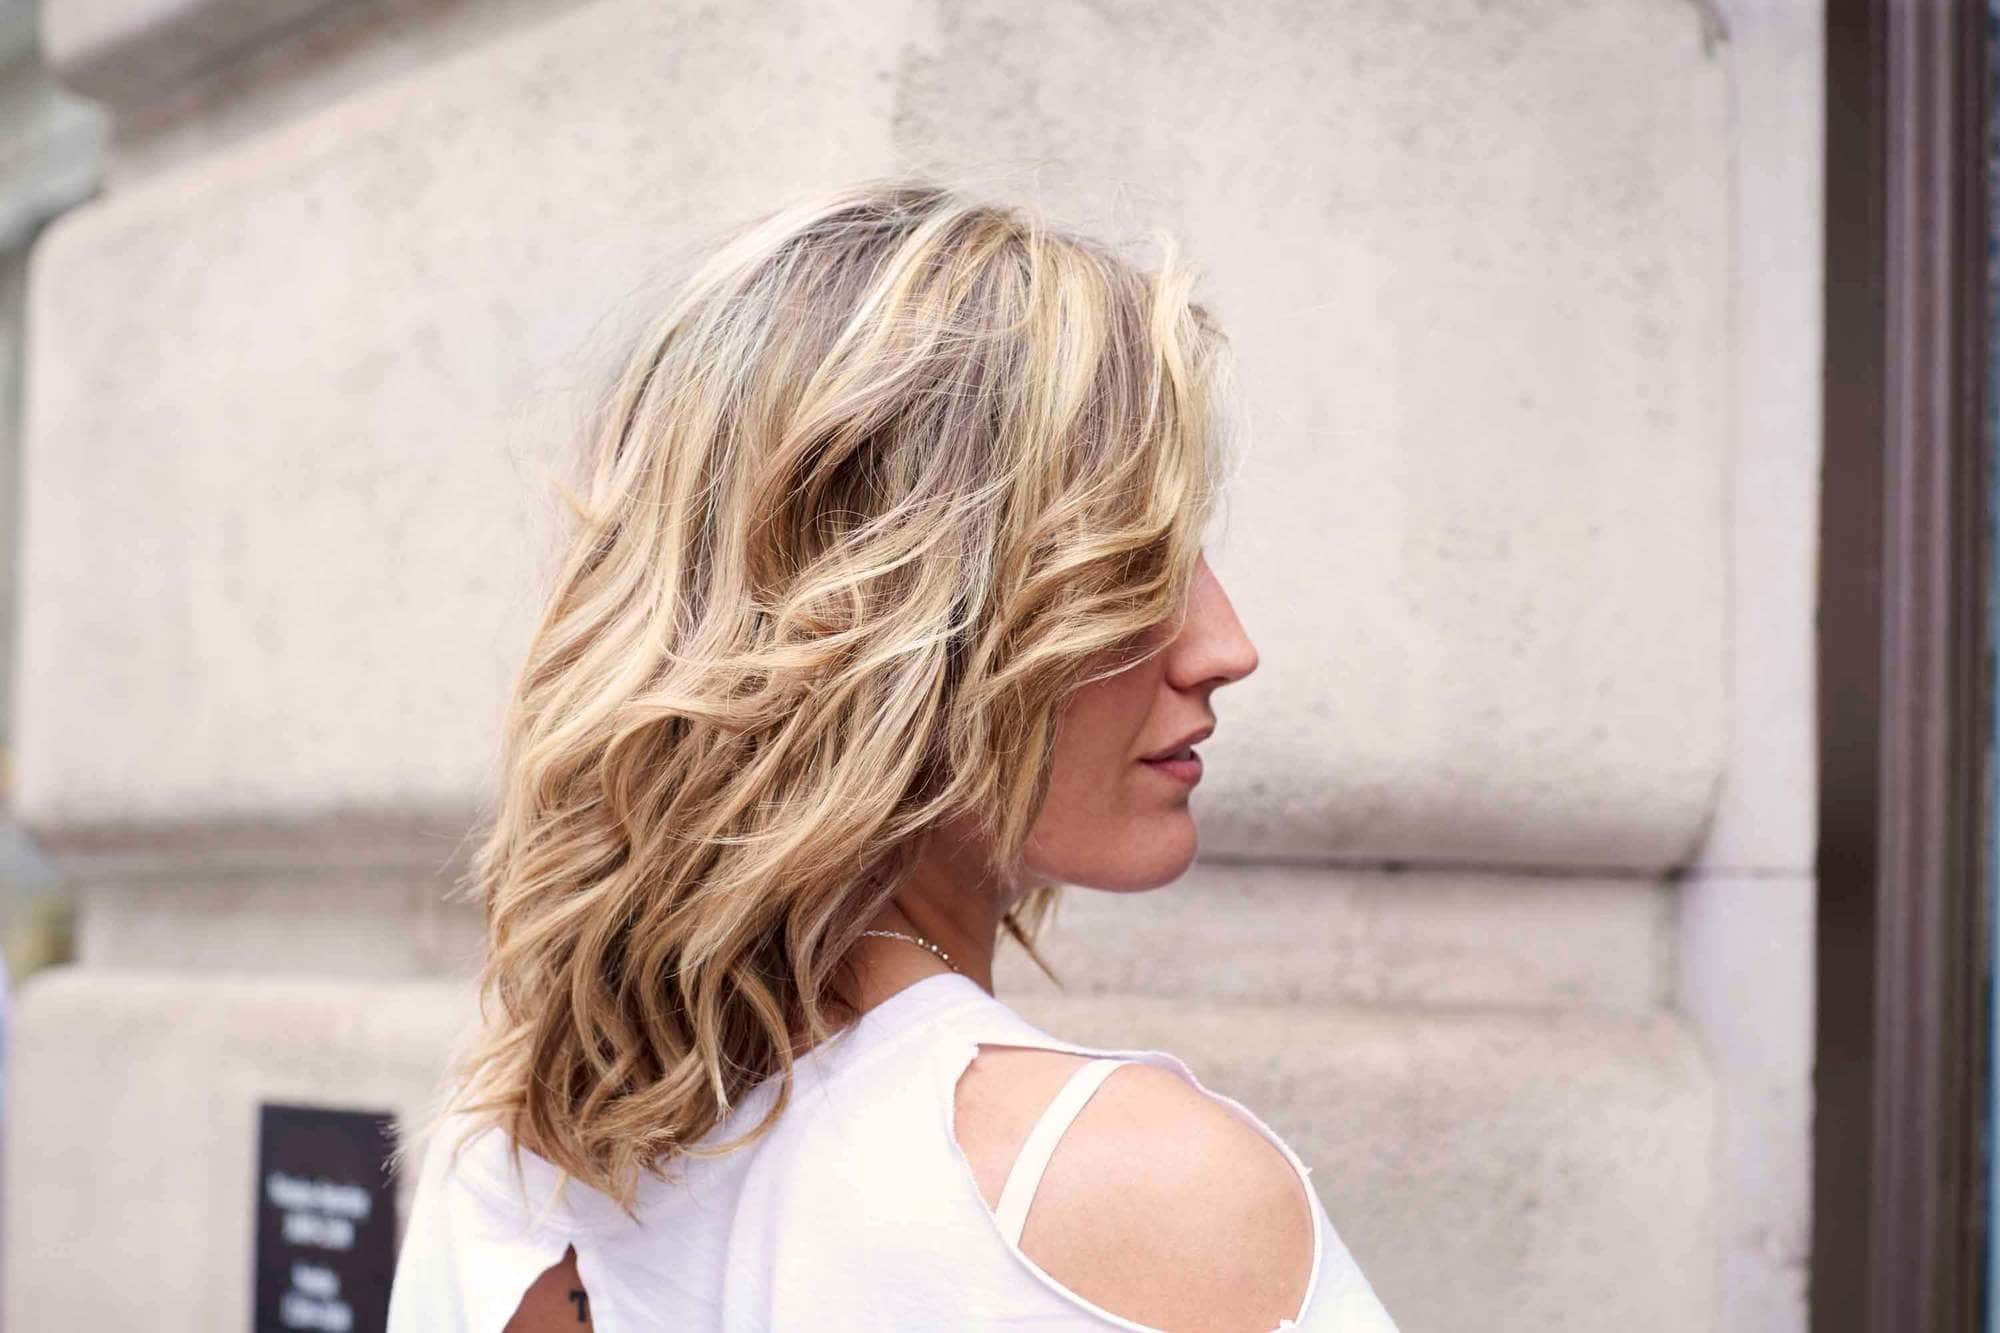 Best Curling Iron For Fine Hair Tips For Scoring The Right Tool